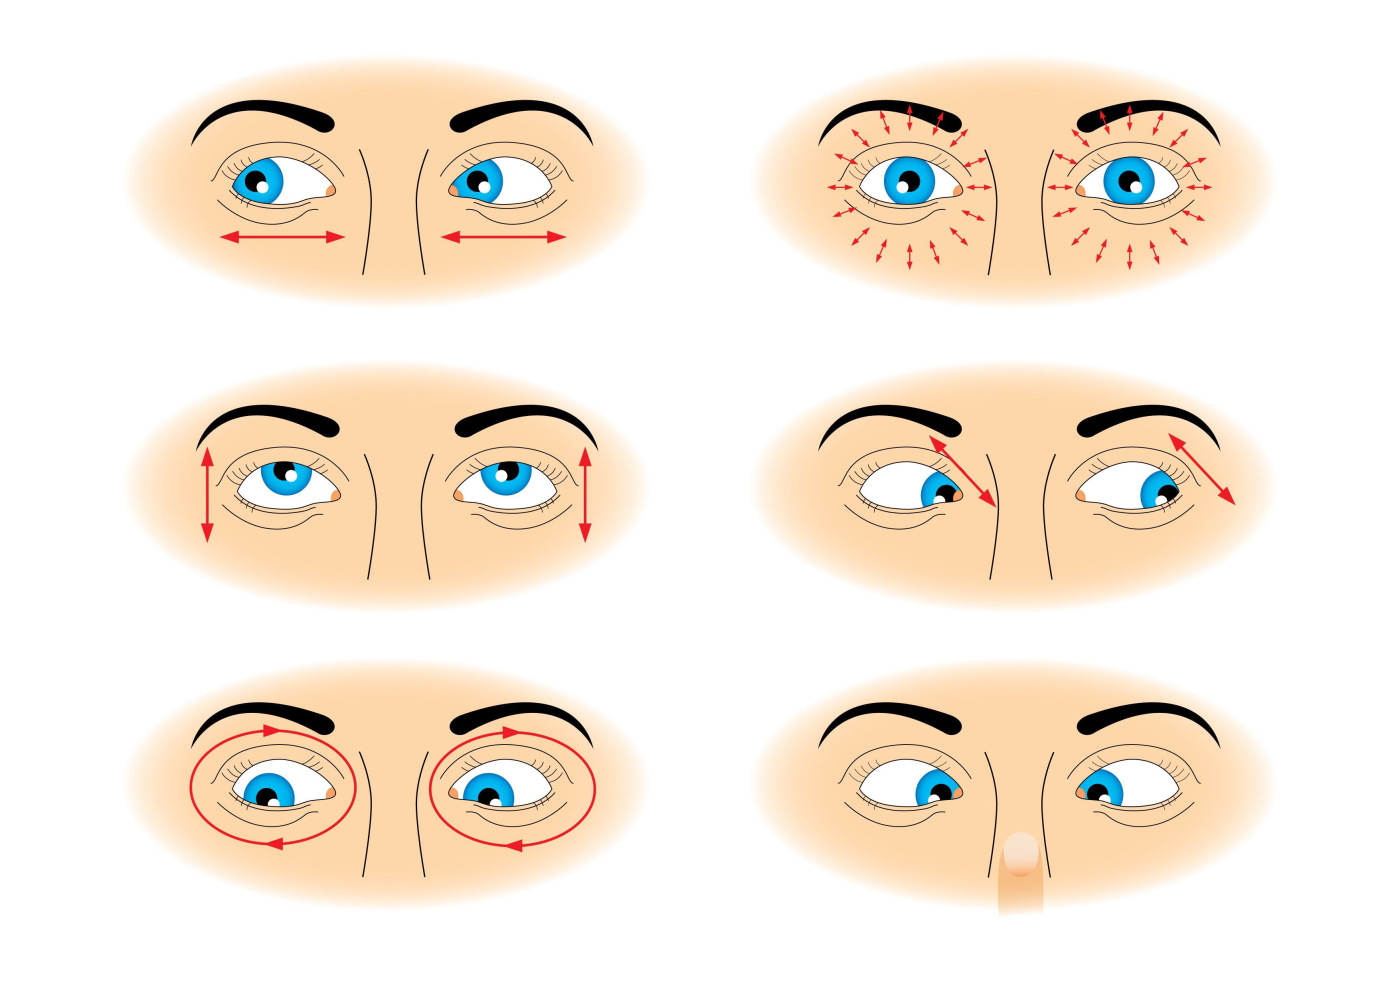 What are some exercises to improve your eyesight? 3